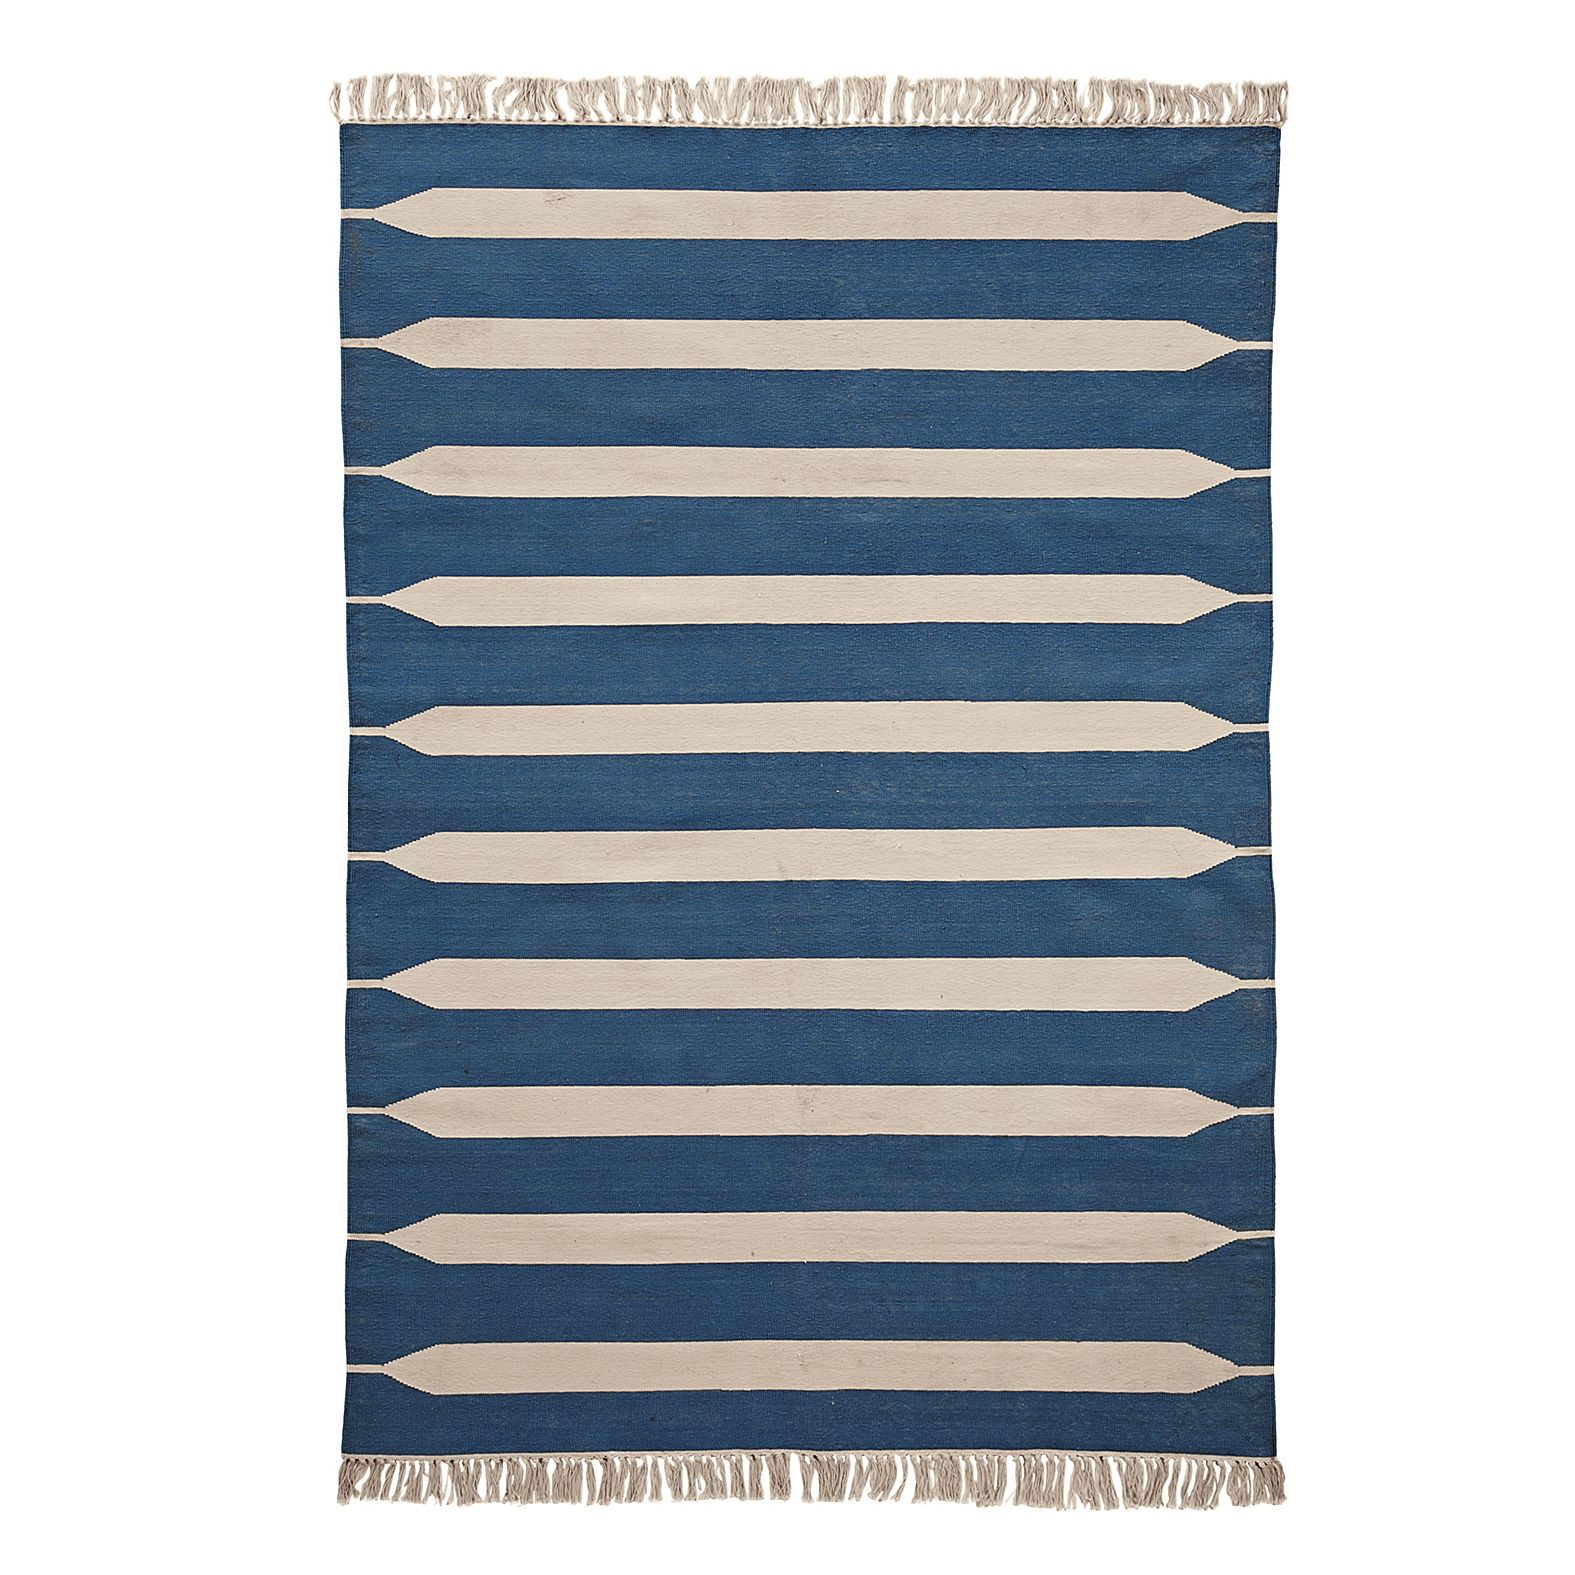 Paddle Stripe Cotton Dhurrie Indigo Serena Lily Dhurrie Rugs Dhurrie Striped Rug